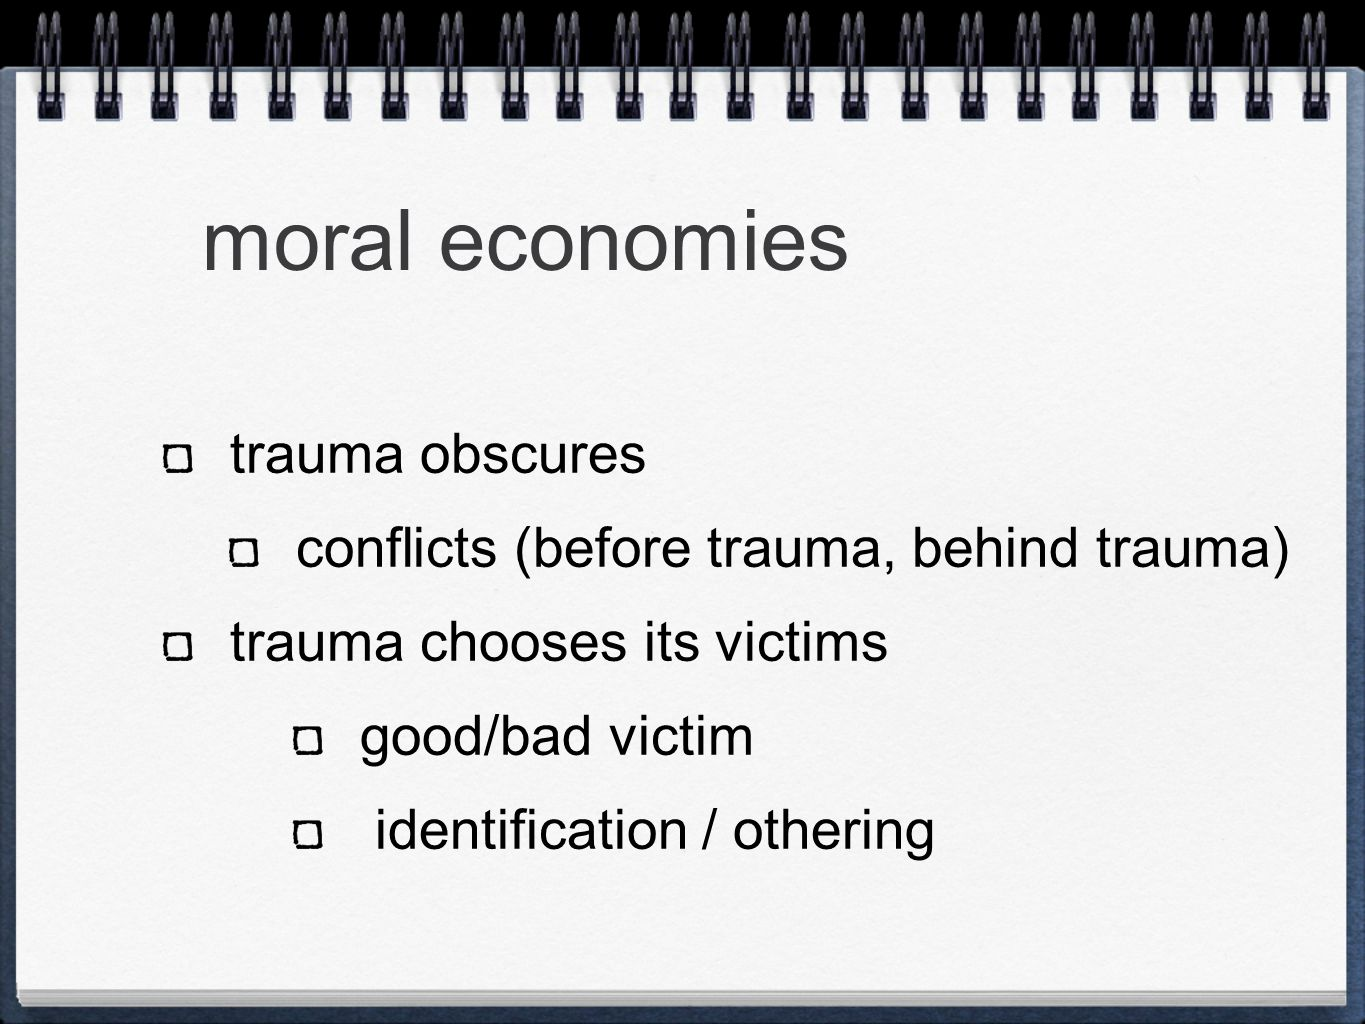 moral economies trauma obscures conflicts (before trauma, behind trauma) trauma chooses its victims good/bad victim identification / othering